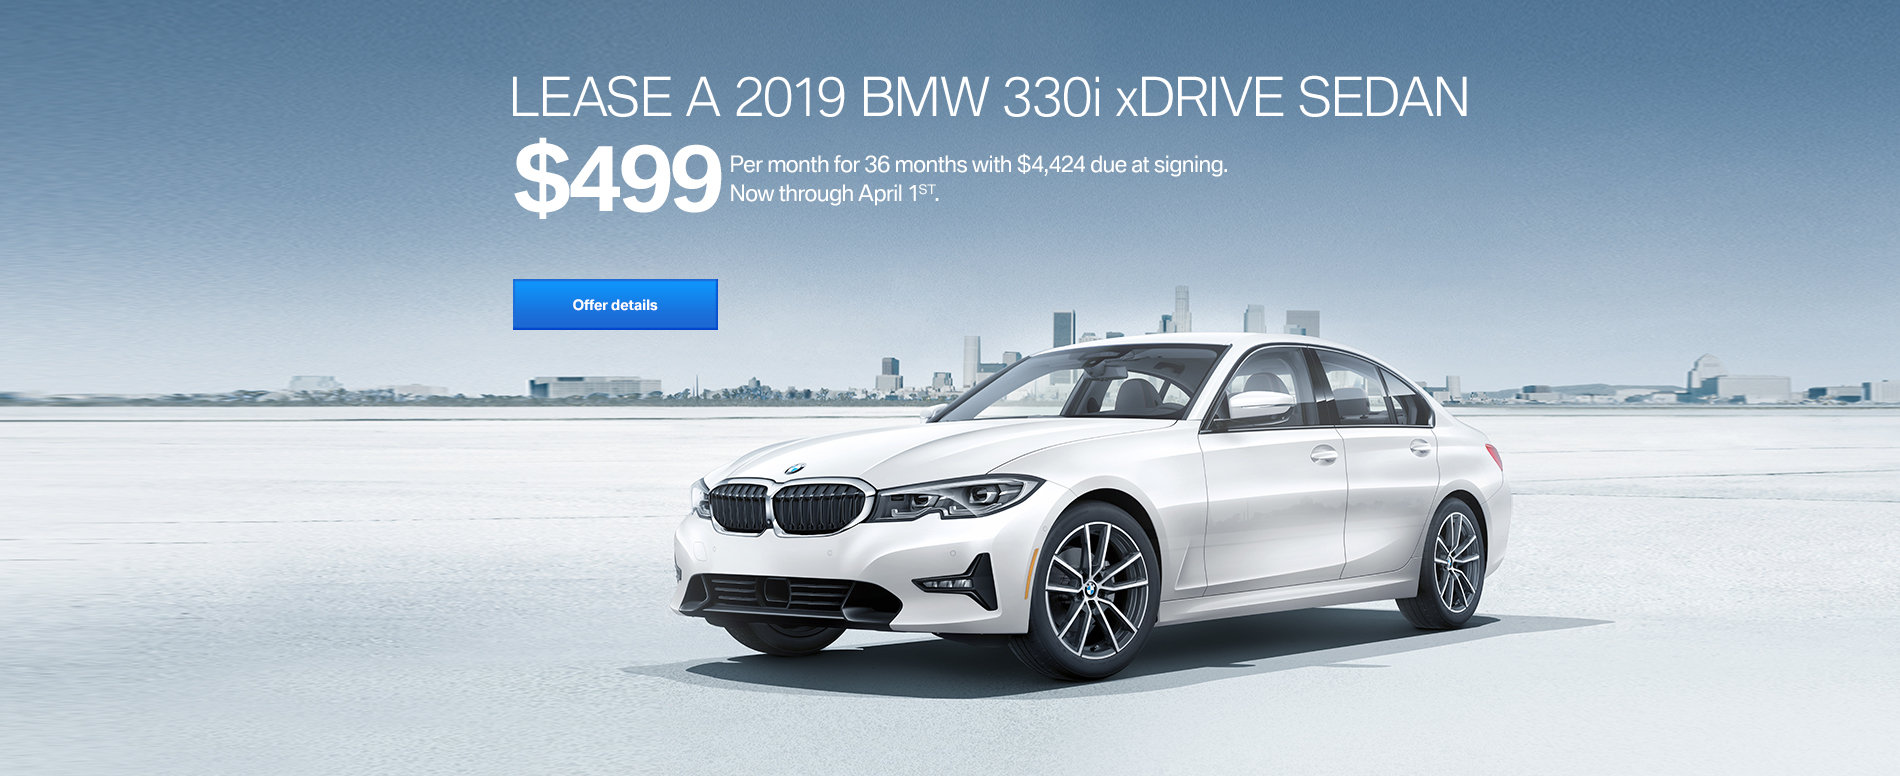 LEASE A 2019 BMW 330i xDRIVE FOR $499/MONTH FOR 36 MONTHS WITH $